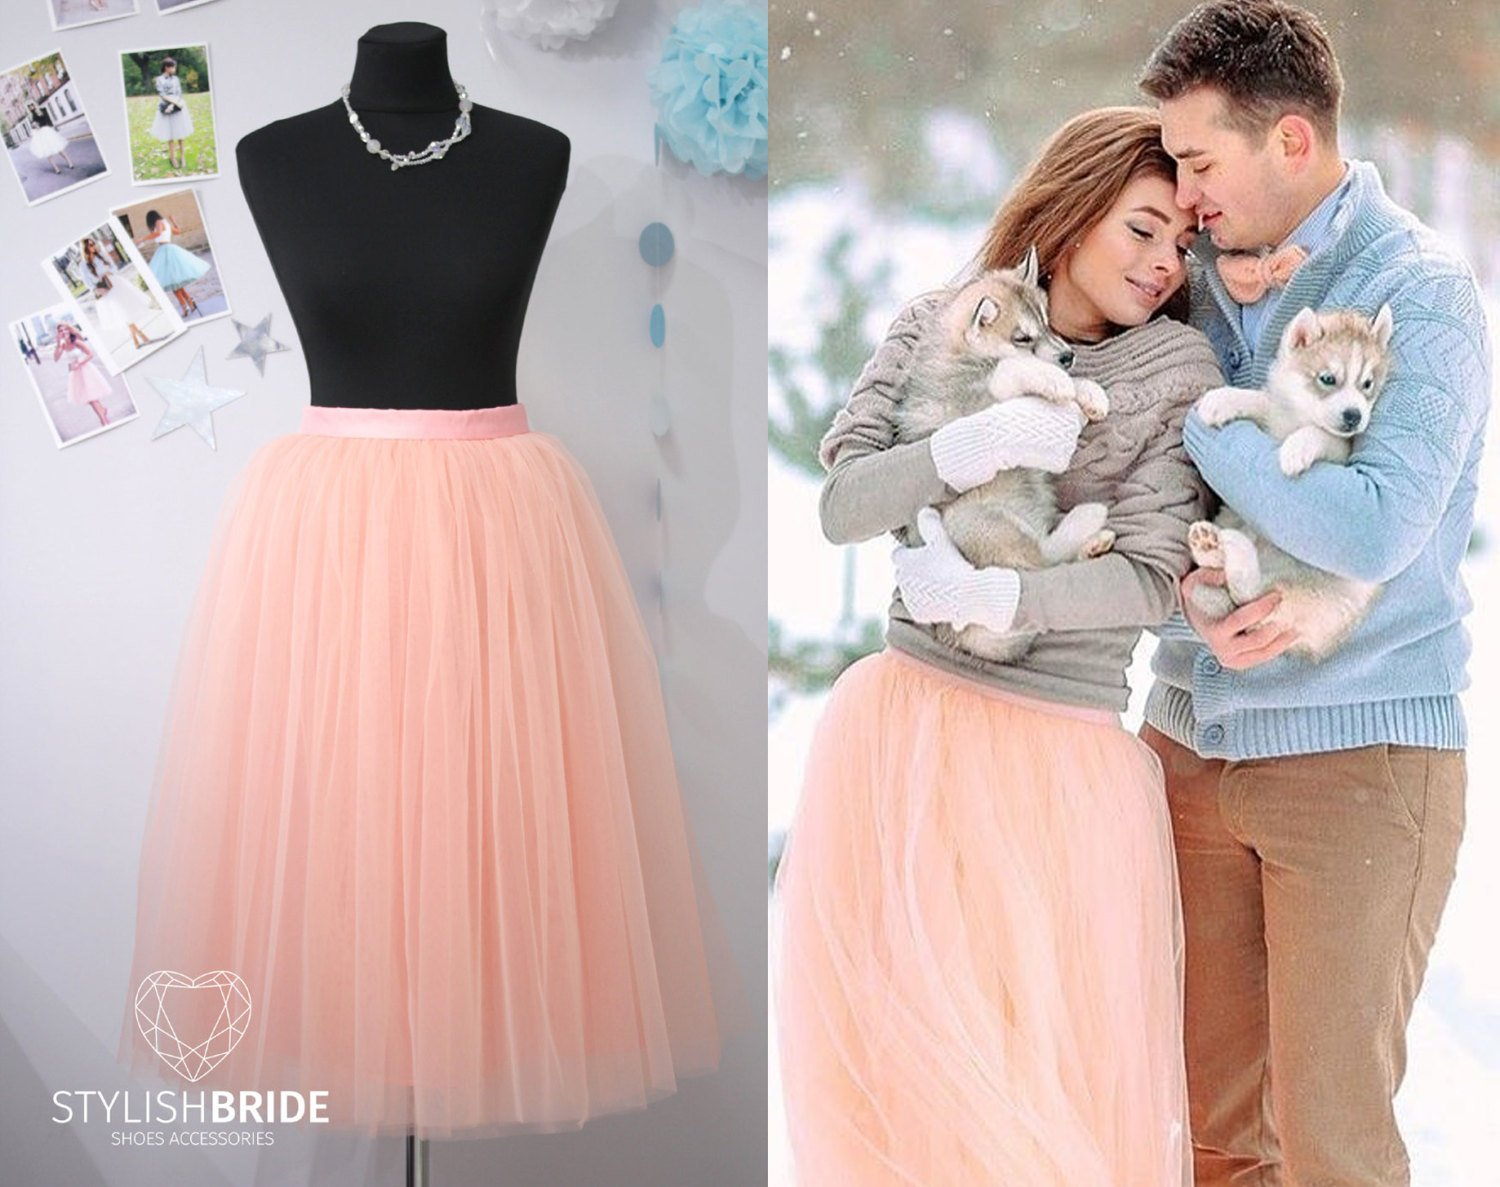 542dfe88c Amazon.com: Soft Peach Tea Length Women's Tutu Skirt, Peach Tulle skirt for  Engagement photos or prom tulle dress: Handmade